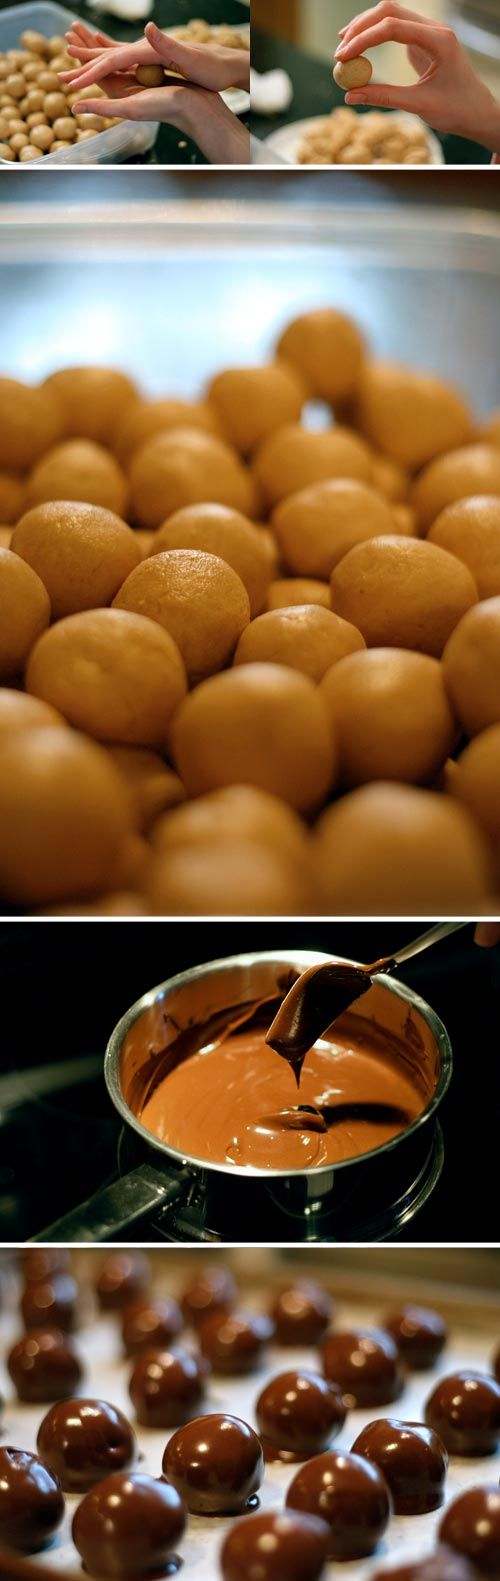 peanut butter balls. lovelovelove: Powder Sugar, Peanutbutt Ball, Peanut Butter Ball Recipes, Chocolates Covers, Peanut Butter Rolls, Christmas Candy, Powdered Sugar, Peanut Butter Balls, Pb Ball